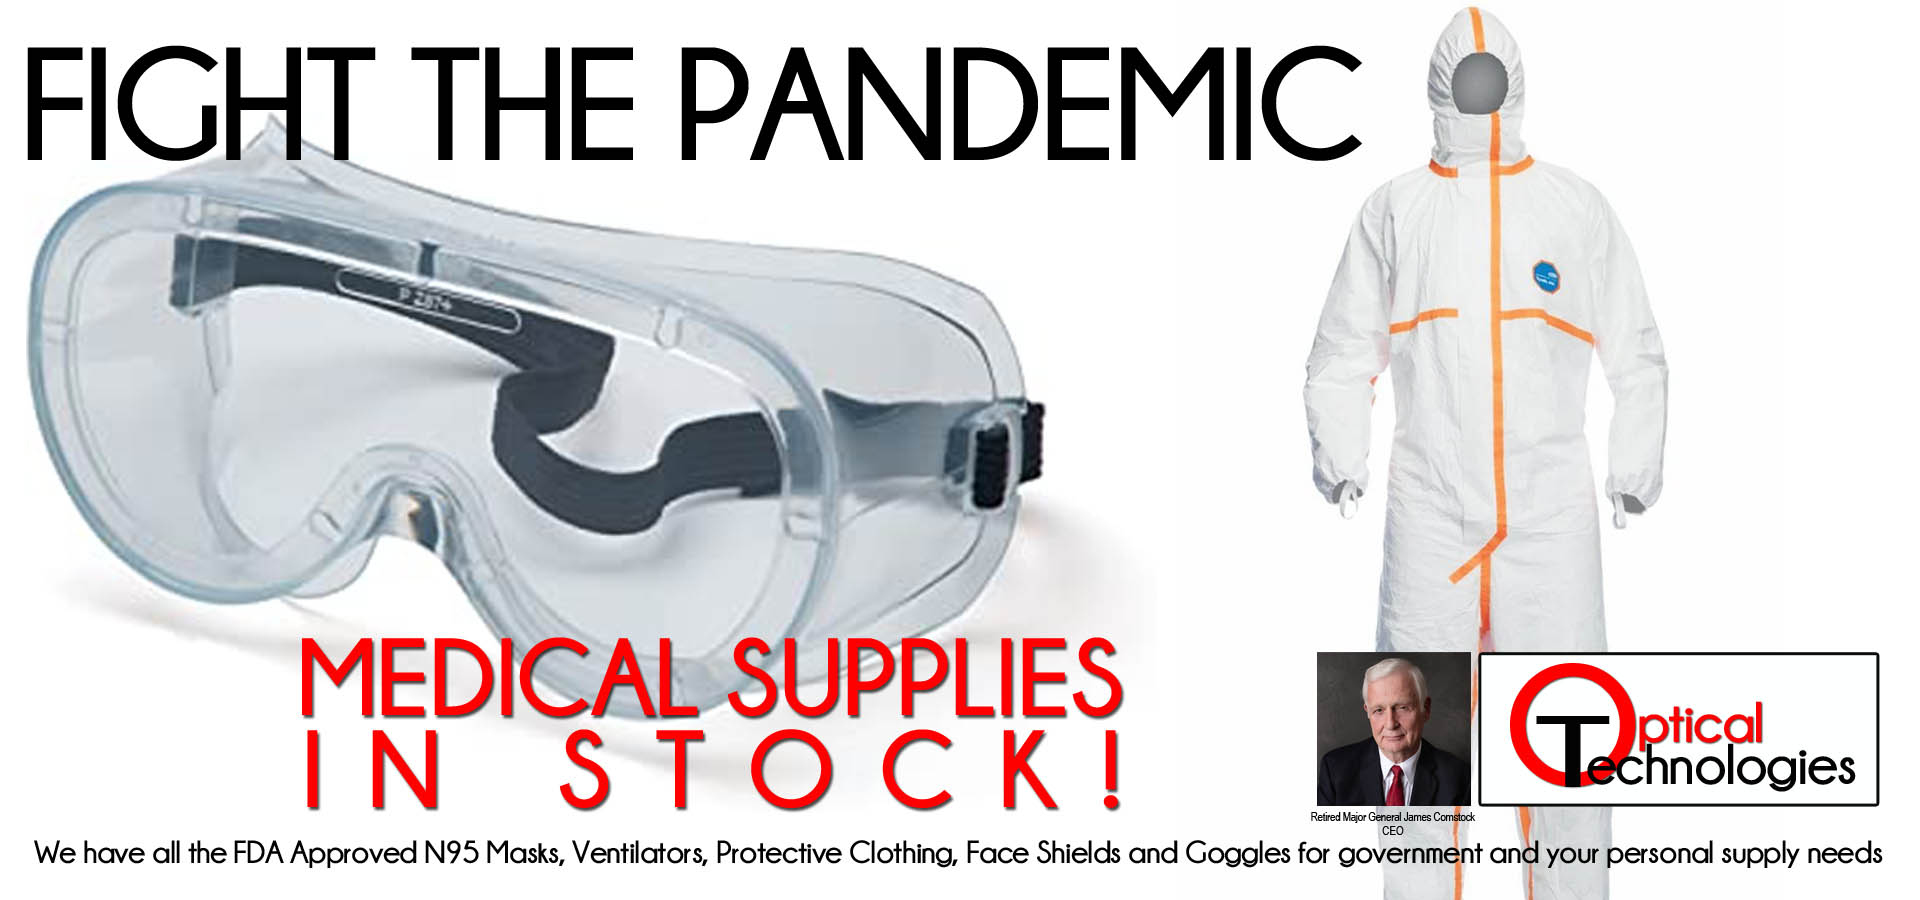 Medical Supplies In Stock Fight The Pandemic